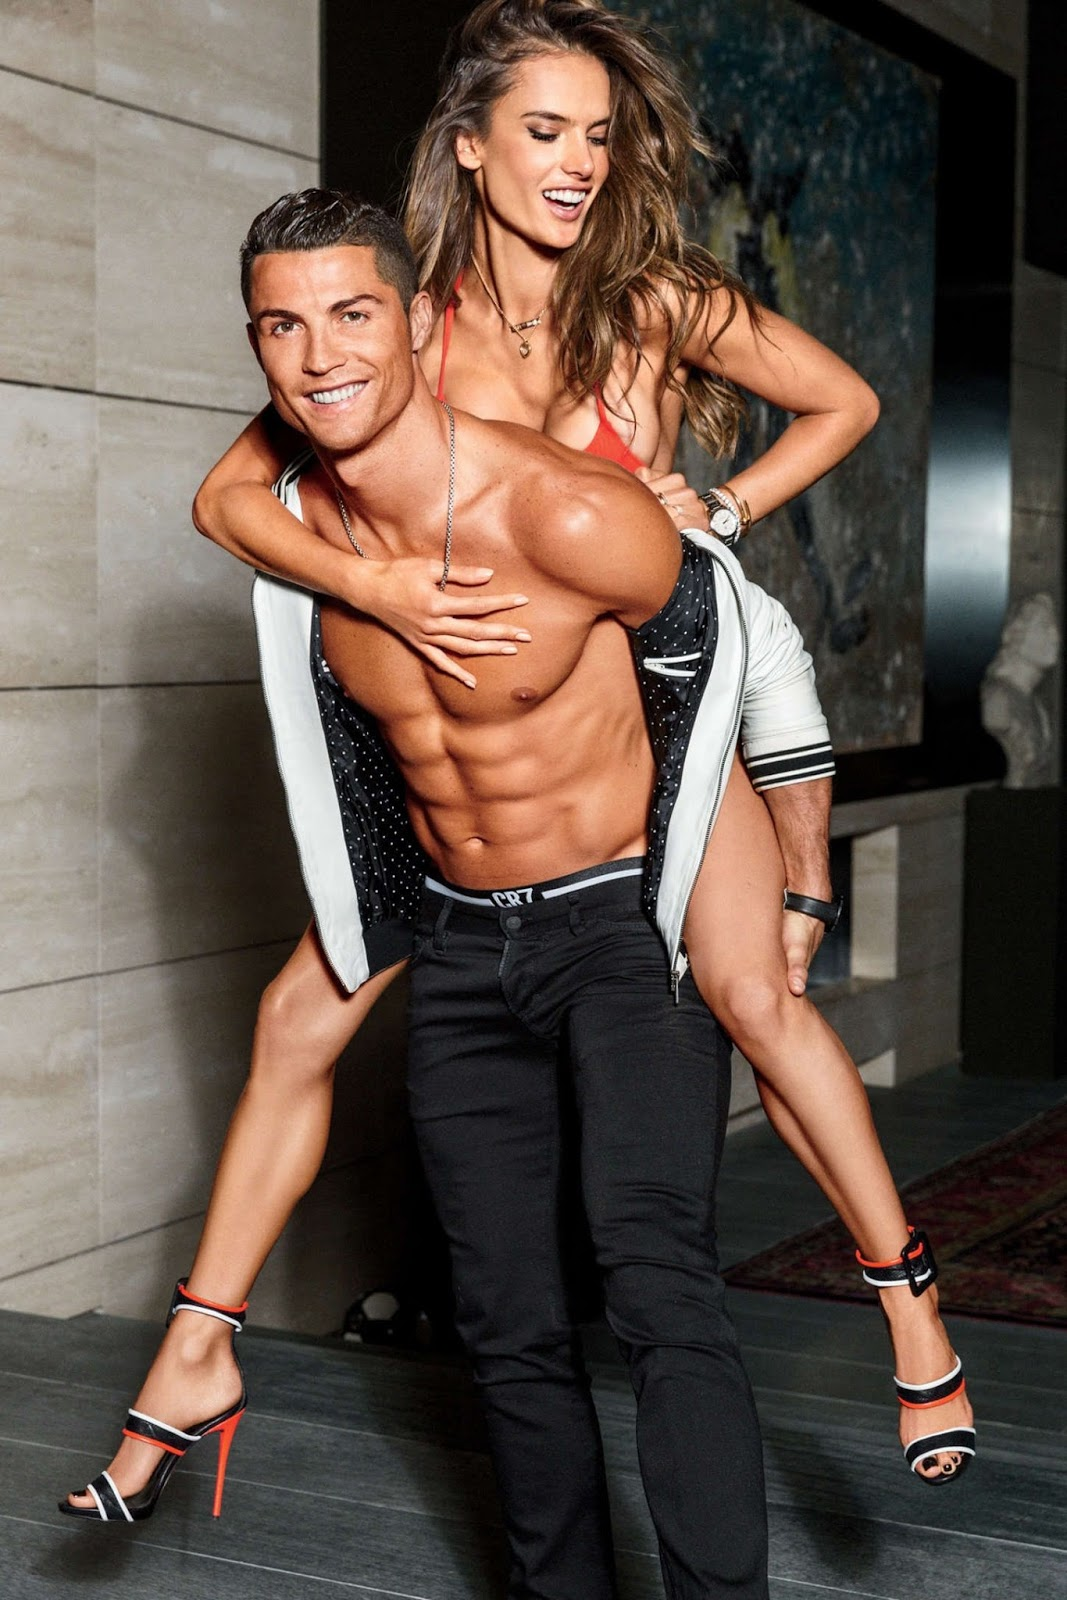 Alessandra Ambrosio and Cristiano Ronaldo in GQ US – The Body Issue – February 2016